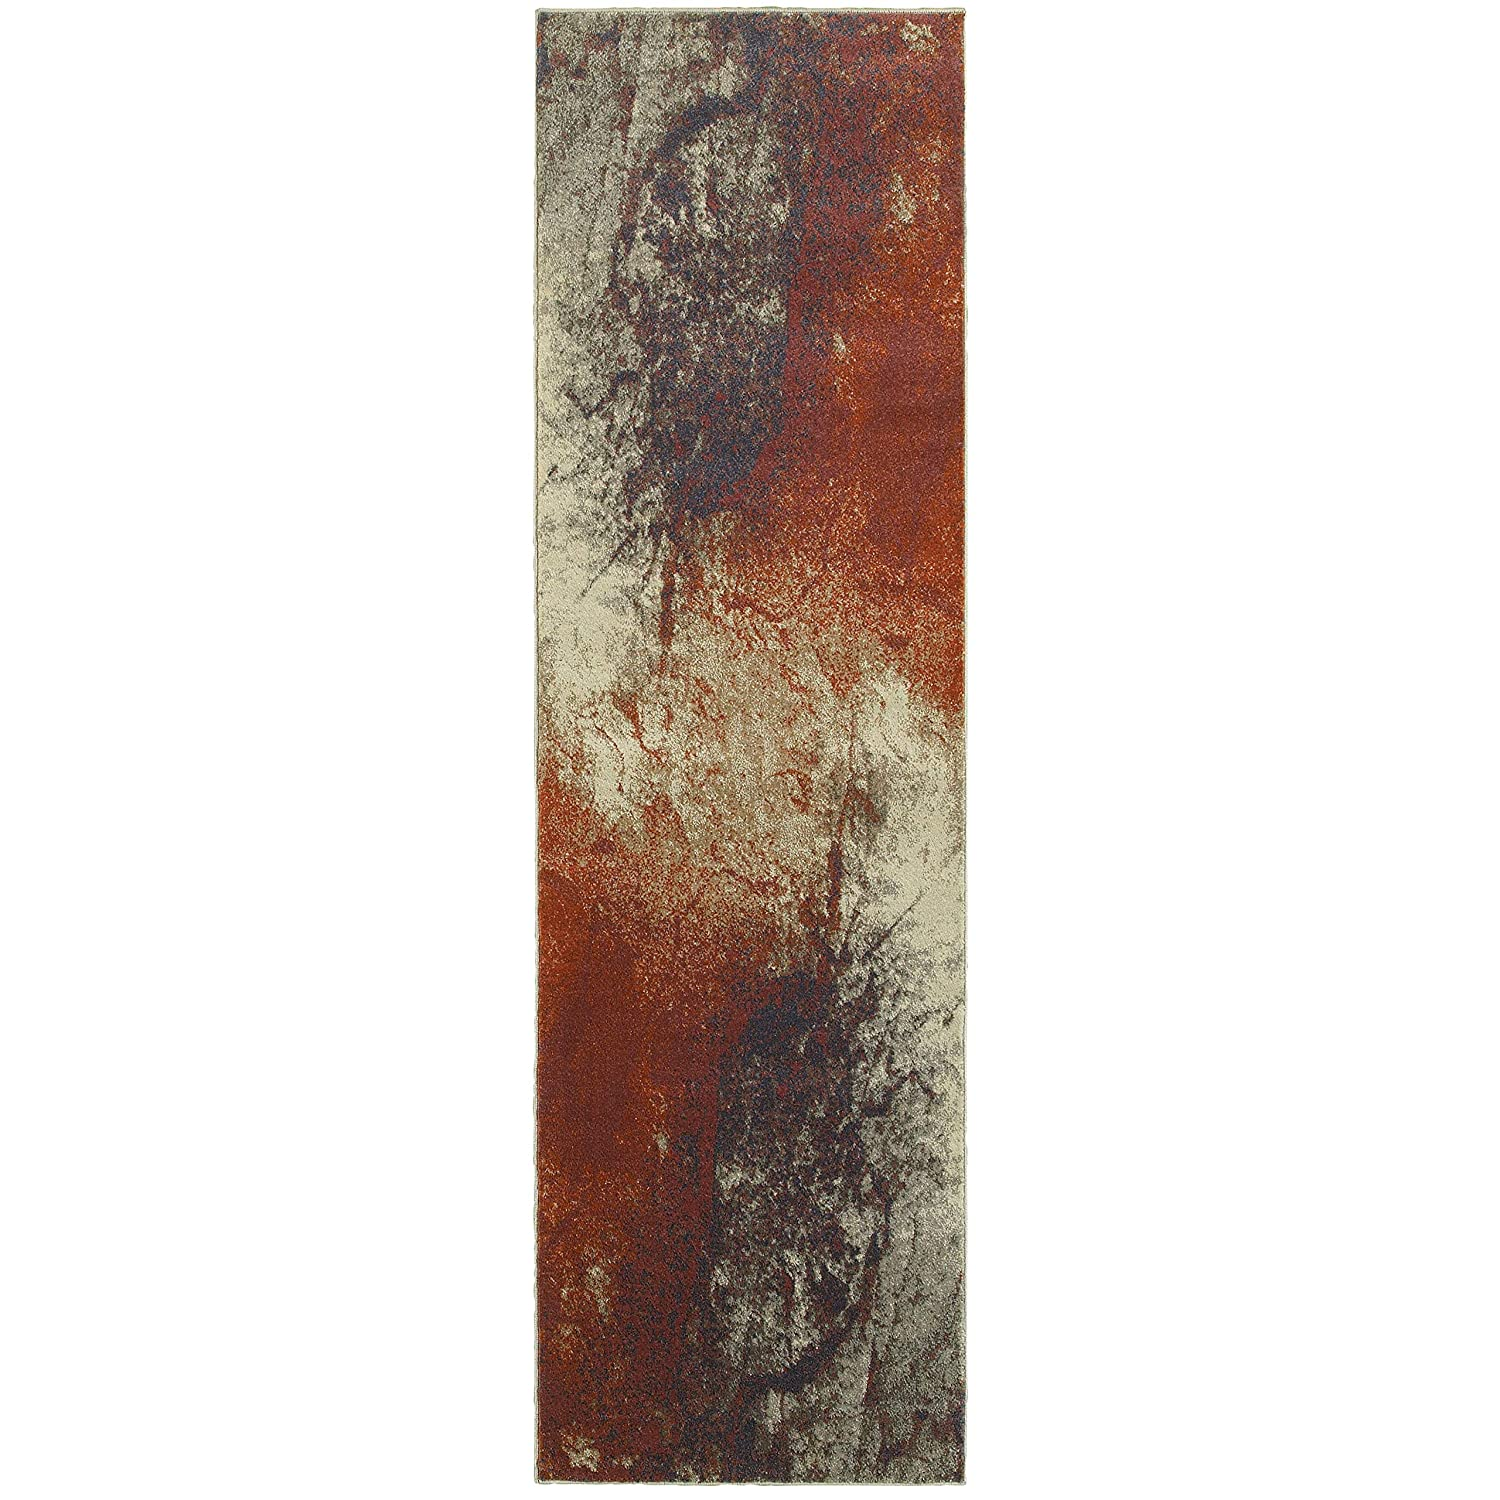 Christopher Knight Home CK-E4331 Paradise Abstract Indoor Runner 2ft 3in X 7ft 6in Beige,Orange